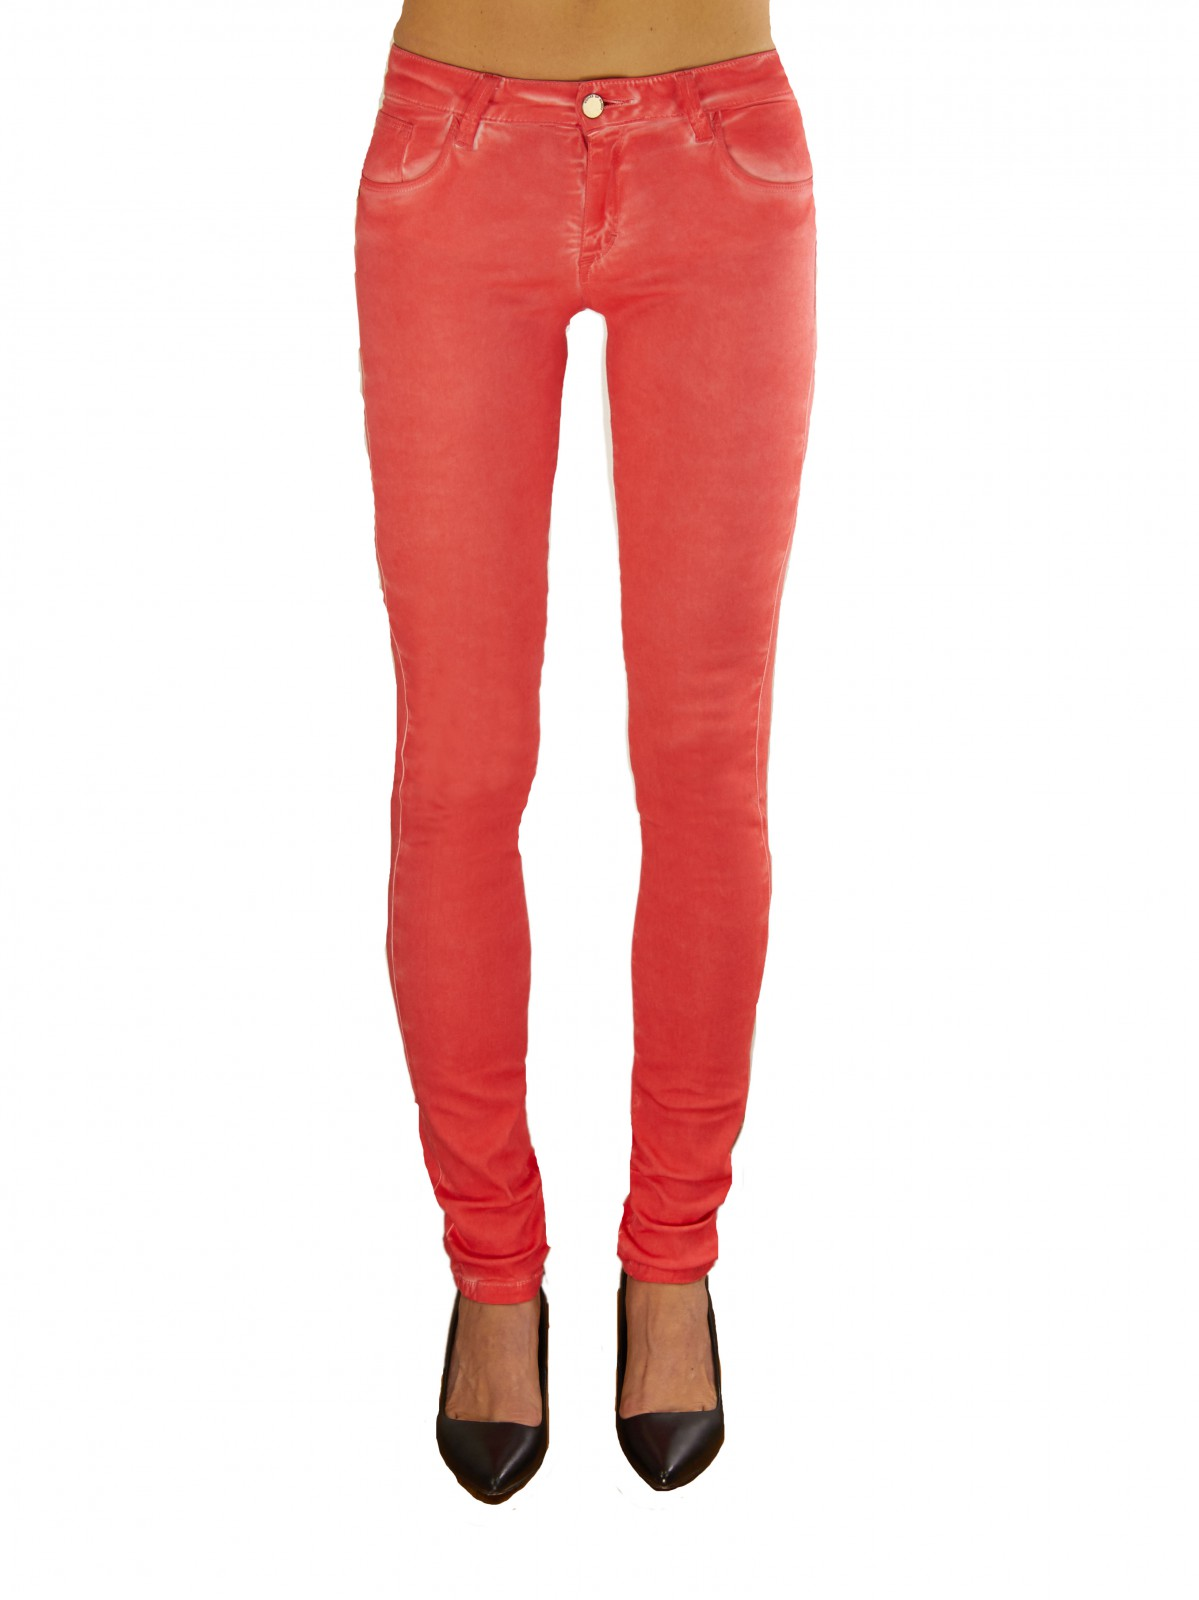 Box in Gum Mid Rise Jeans in Coral